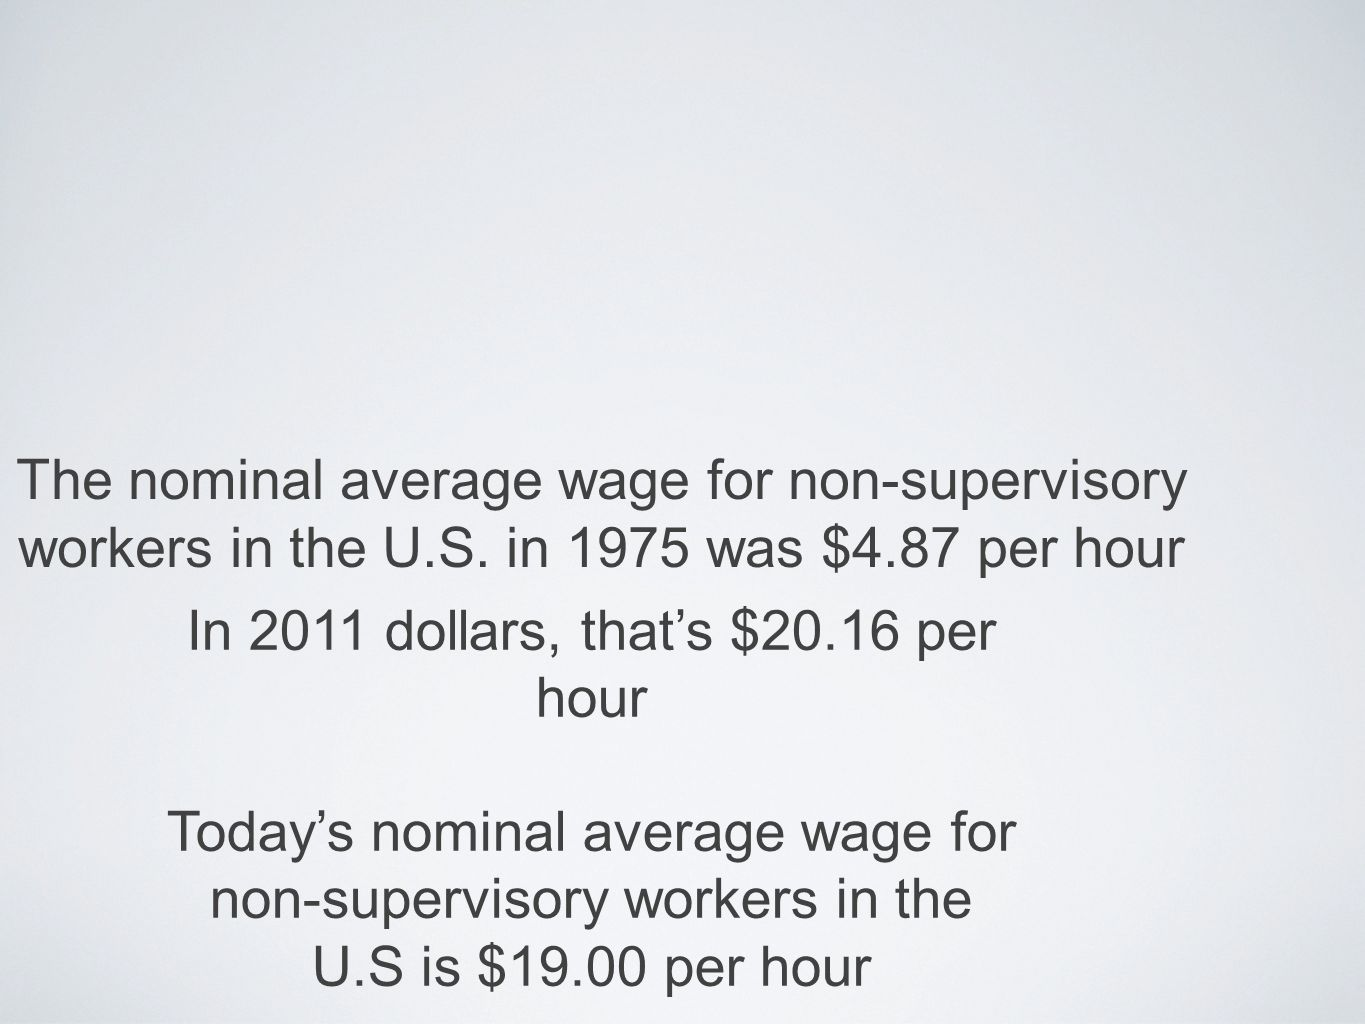 The nominal average wage for non-supervisory workers in the U.S.